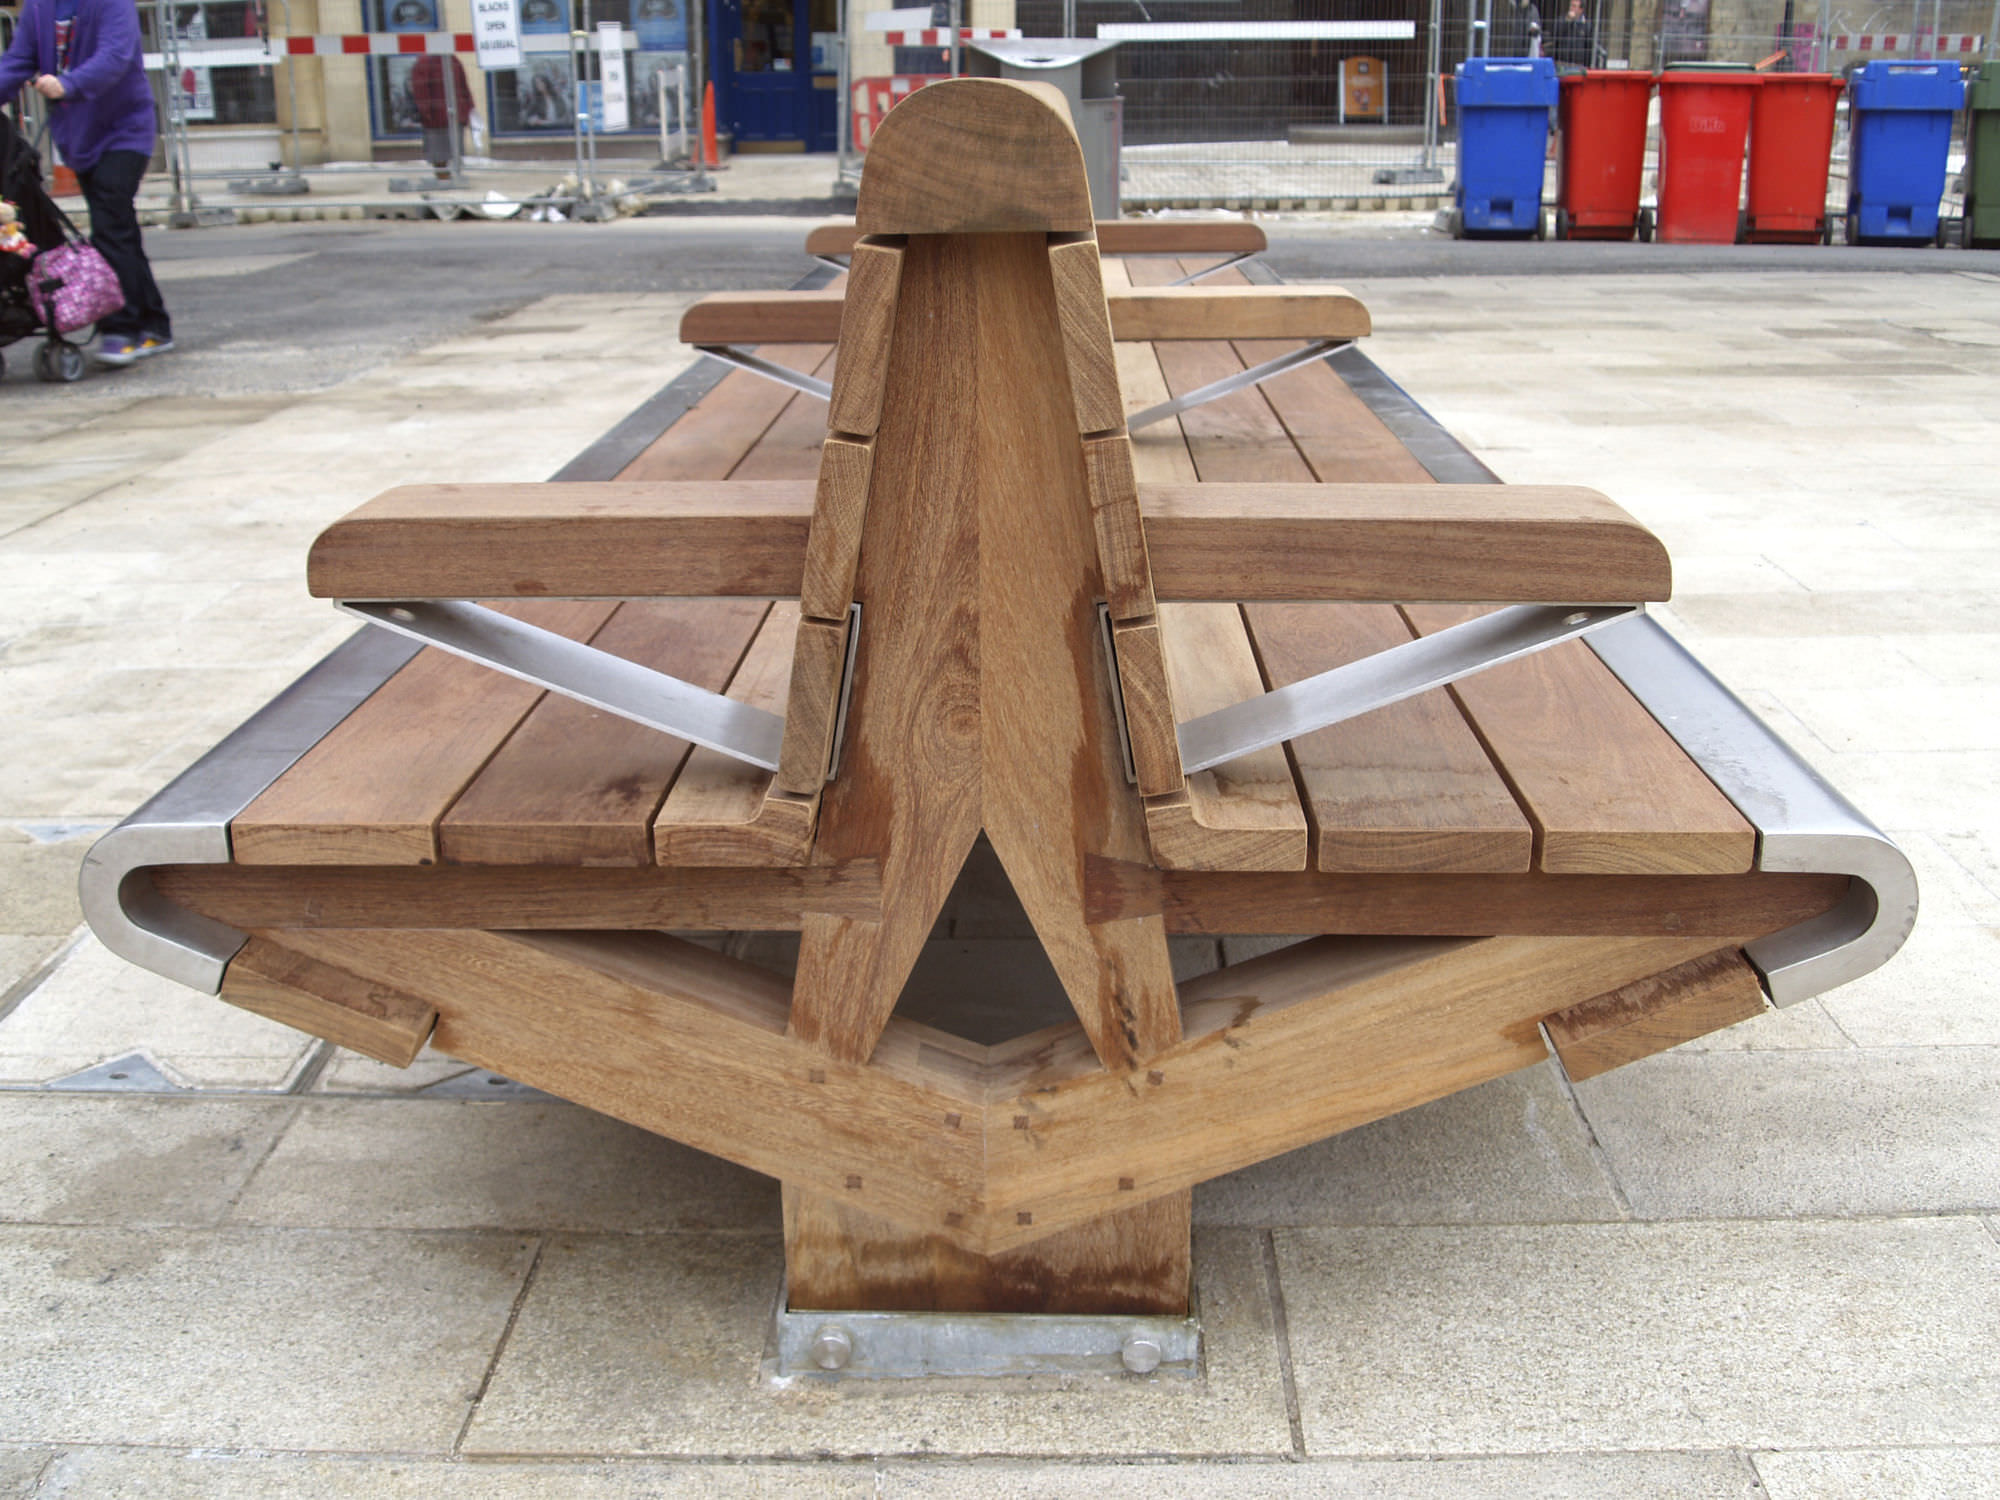 Public Bench / Contemporary / Wooden / Stainless Steel   CATHEDRAL SQUARE,  PETERBOROUGH